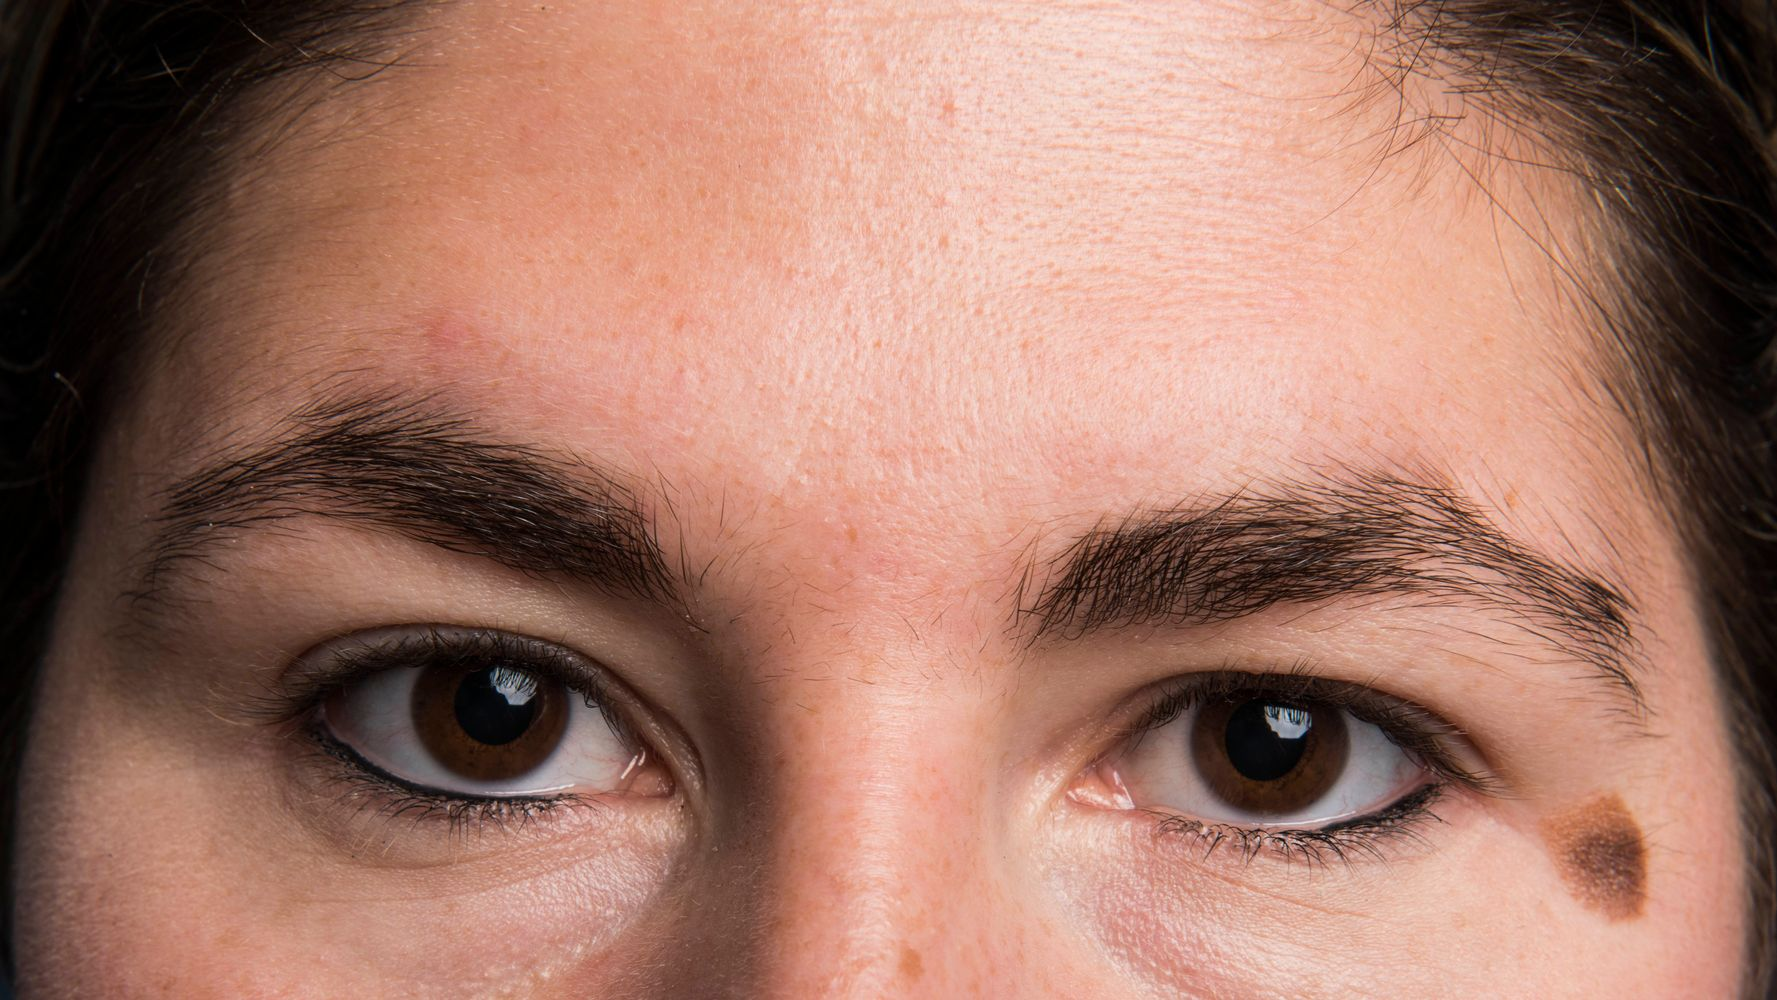 I Tried 3 Popular Eyebrow Grooming Methods  Here's What You Need To